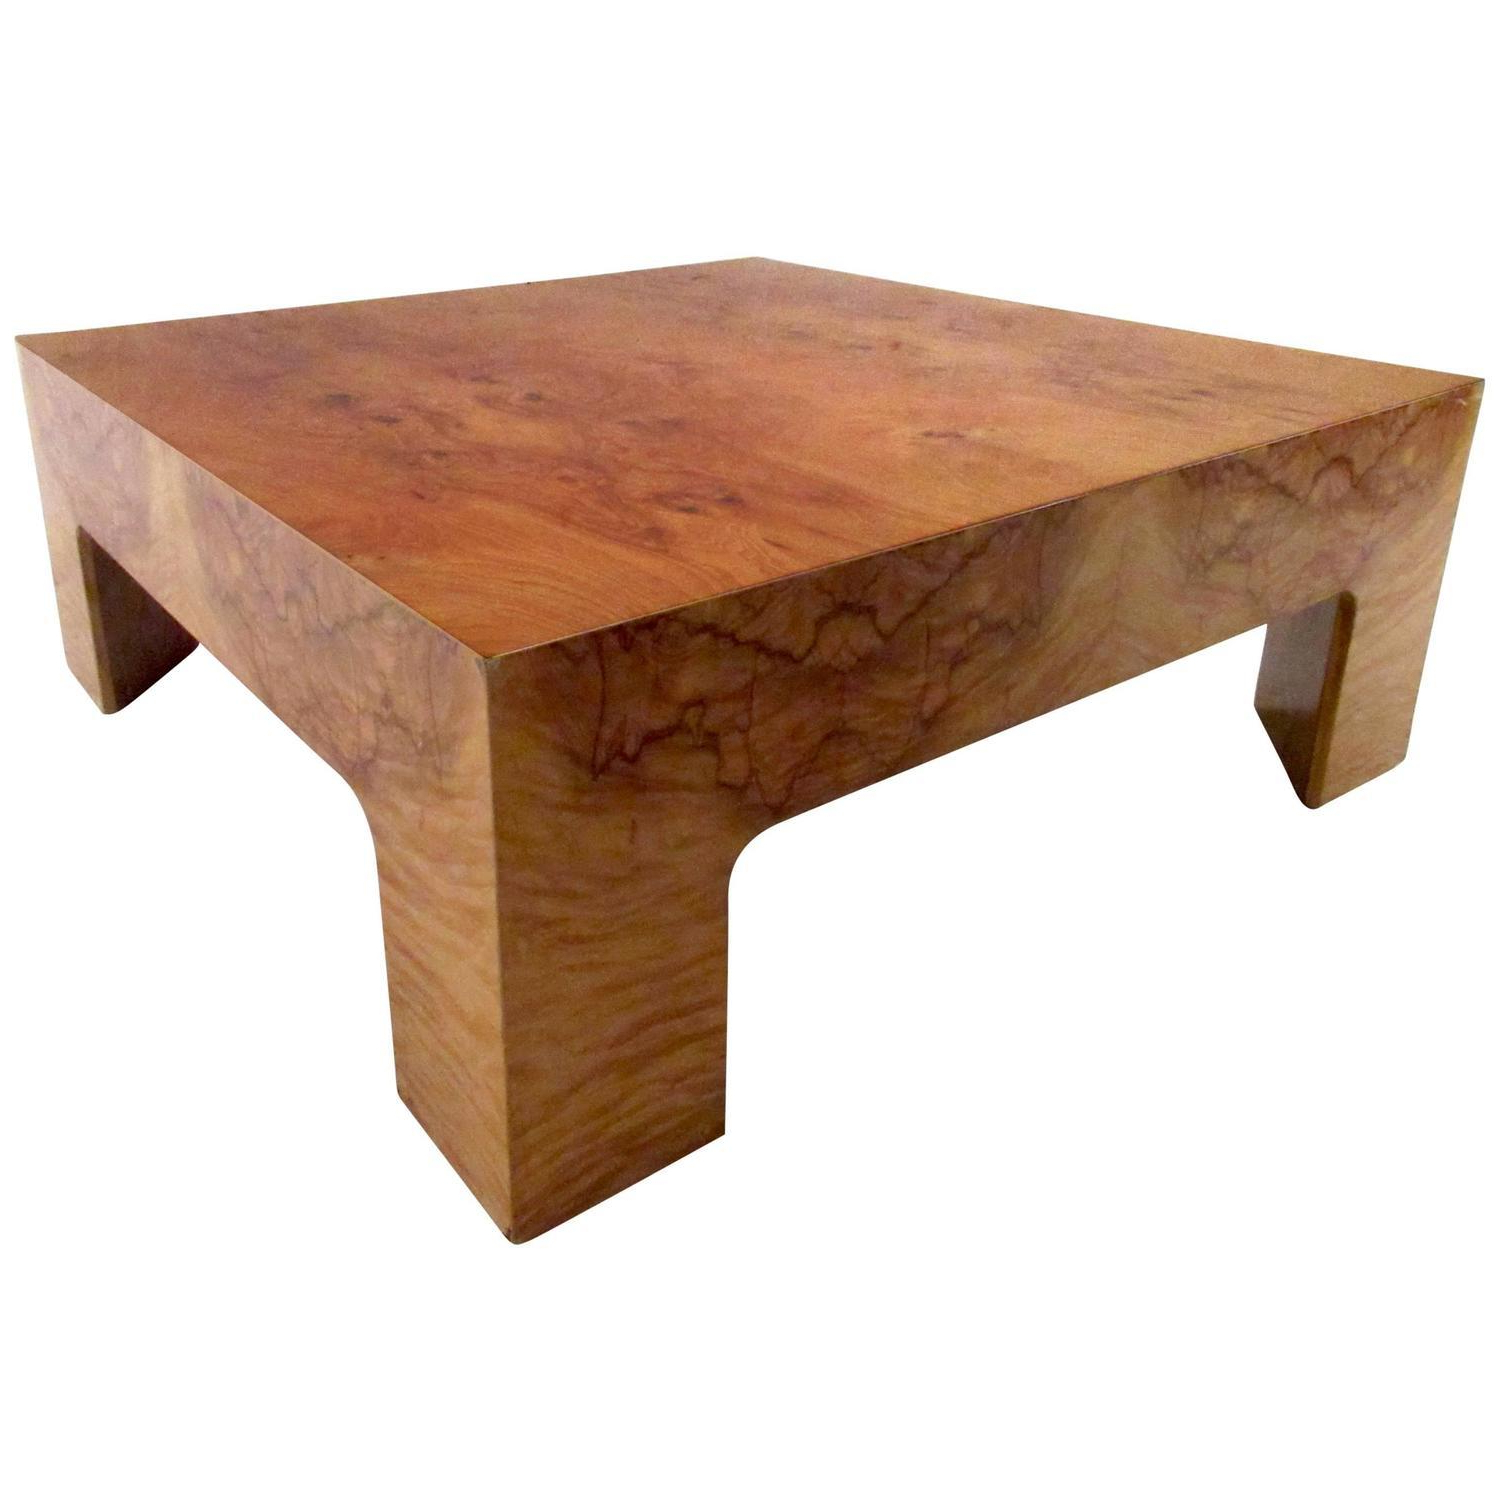 Well Known Burlwood Coffee Table Intended For Oslo Burl Wood Veneer Coffee Tables (View 17 of 20)